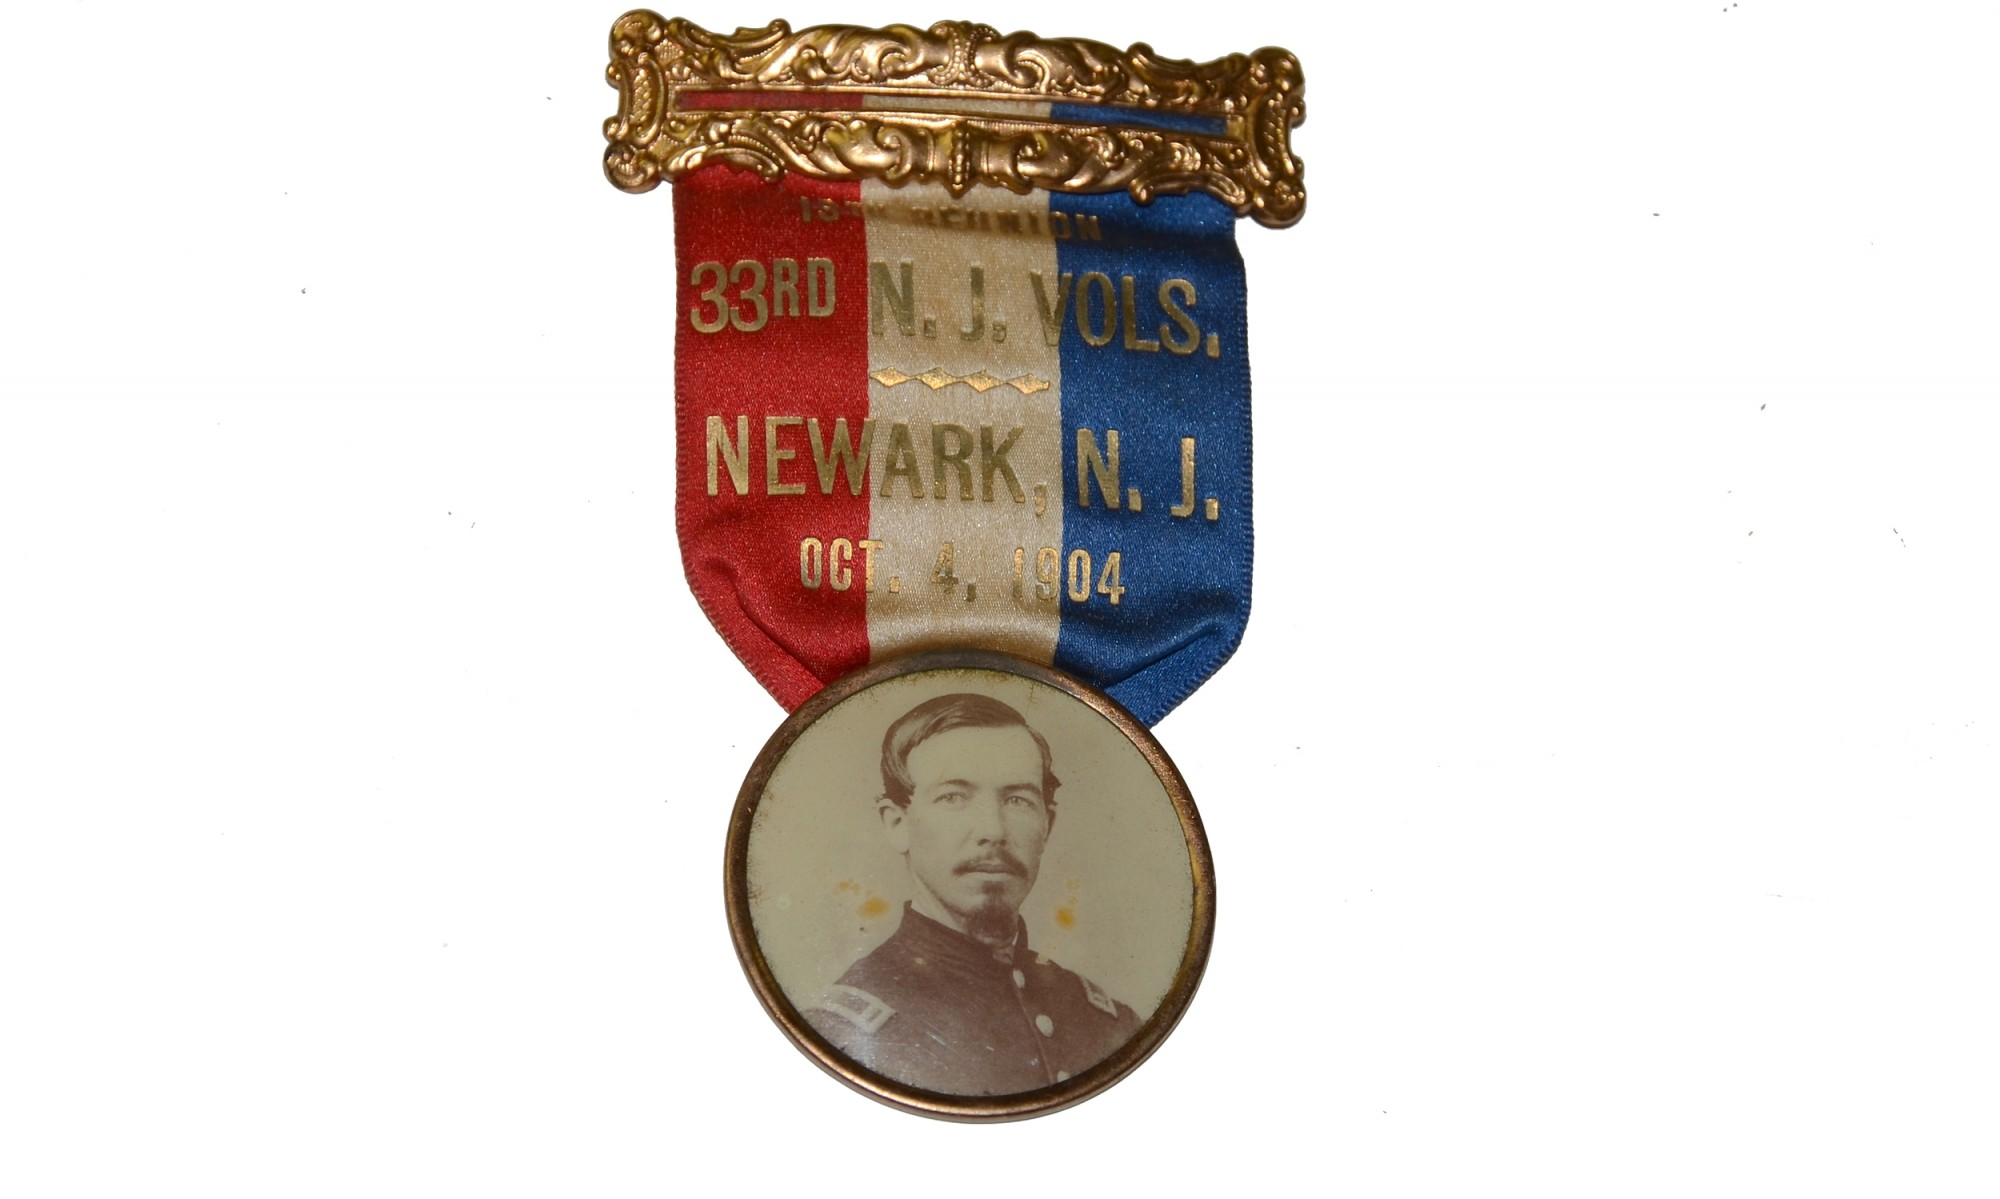 1904 REUNION BADGE FOR THE 33RD NEW JERSEY